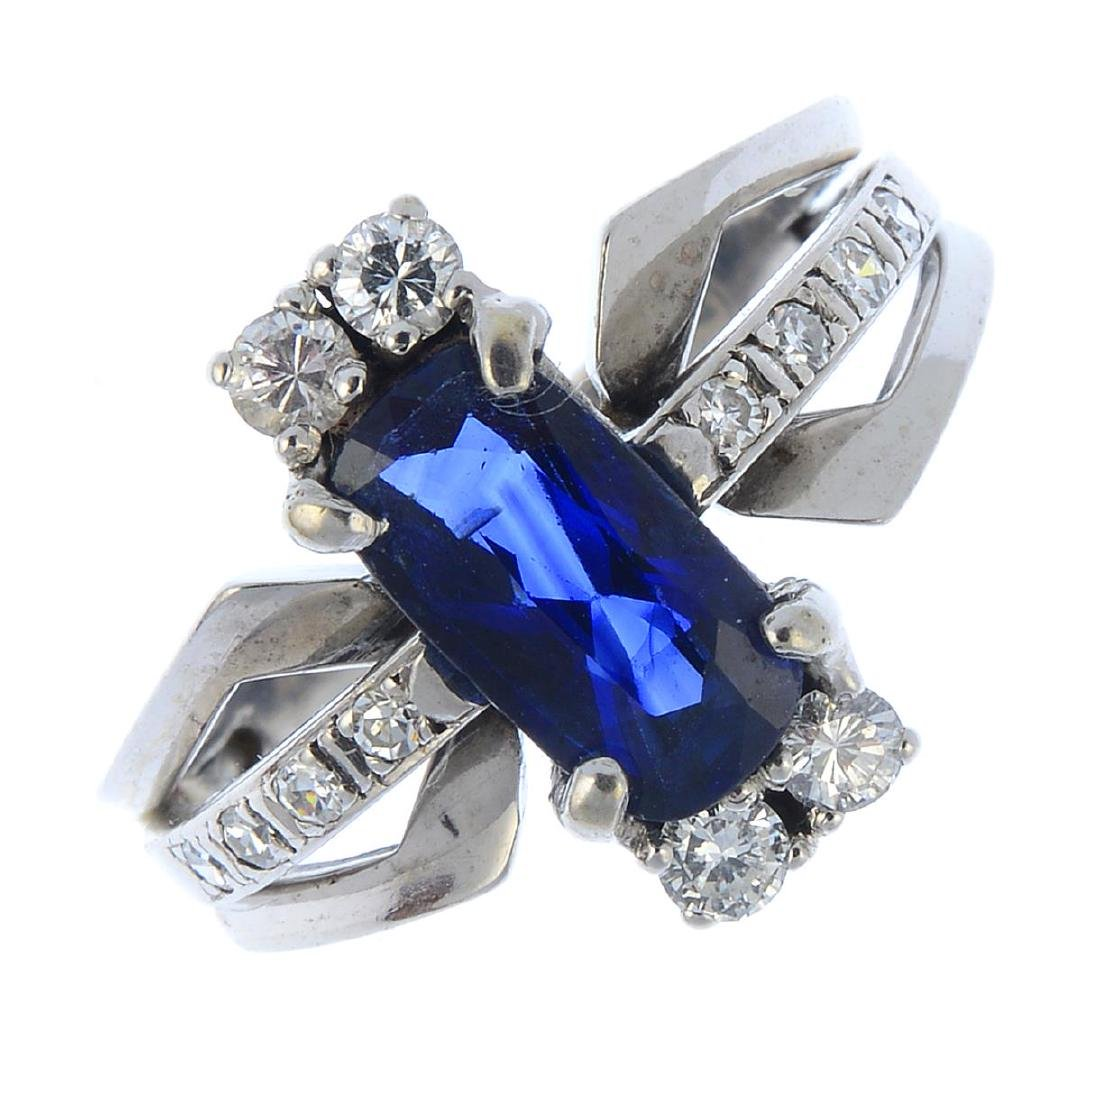 A sapphire and diamond dress ring. The